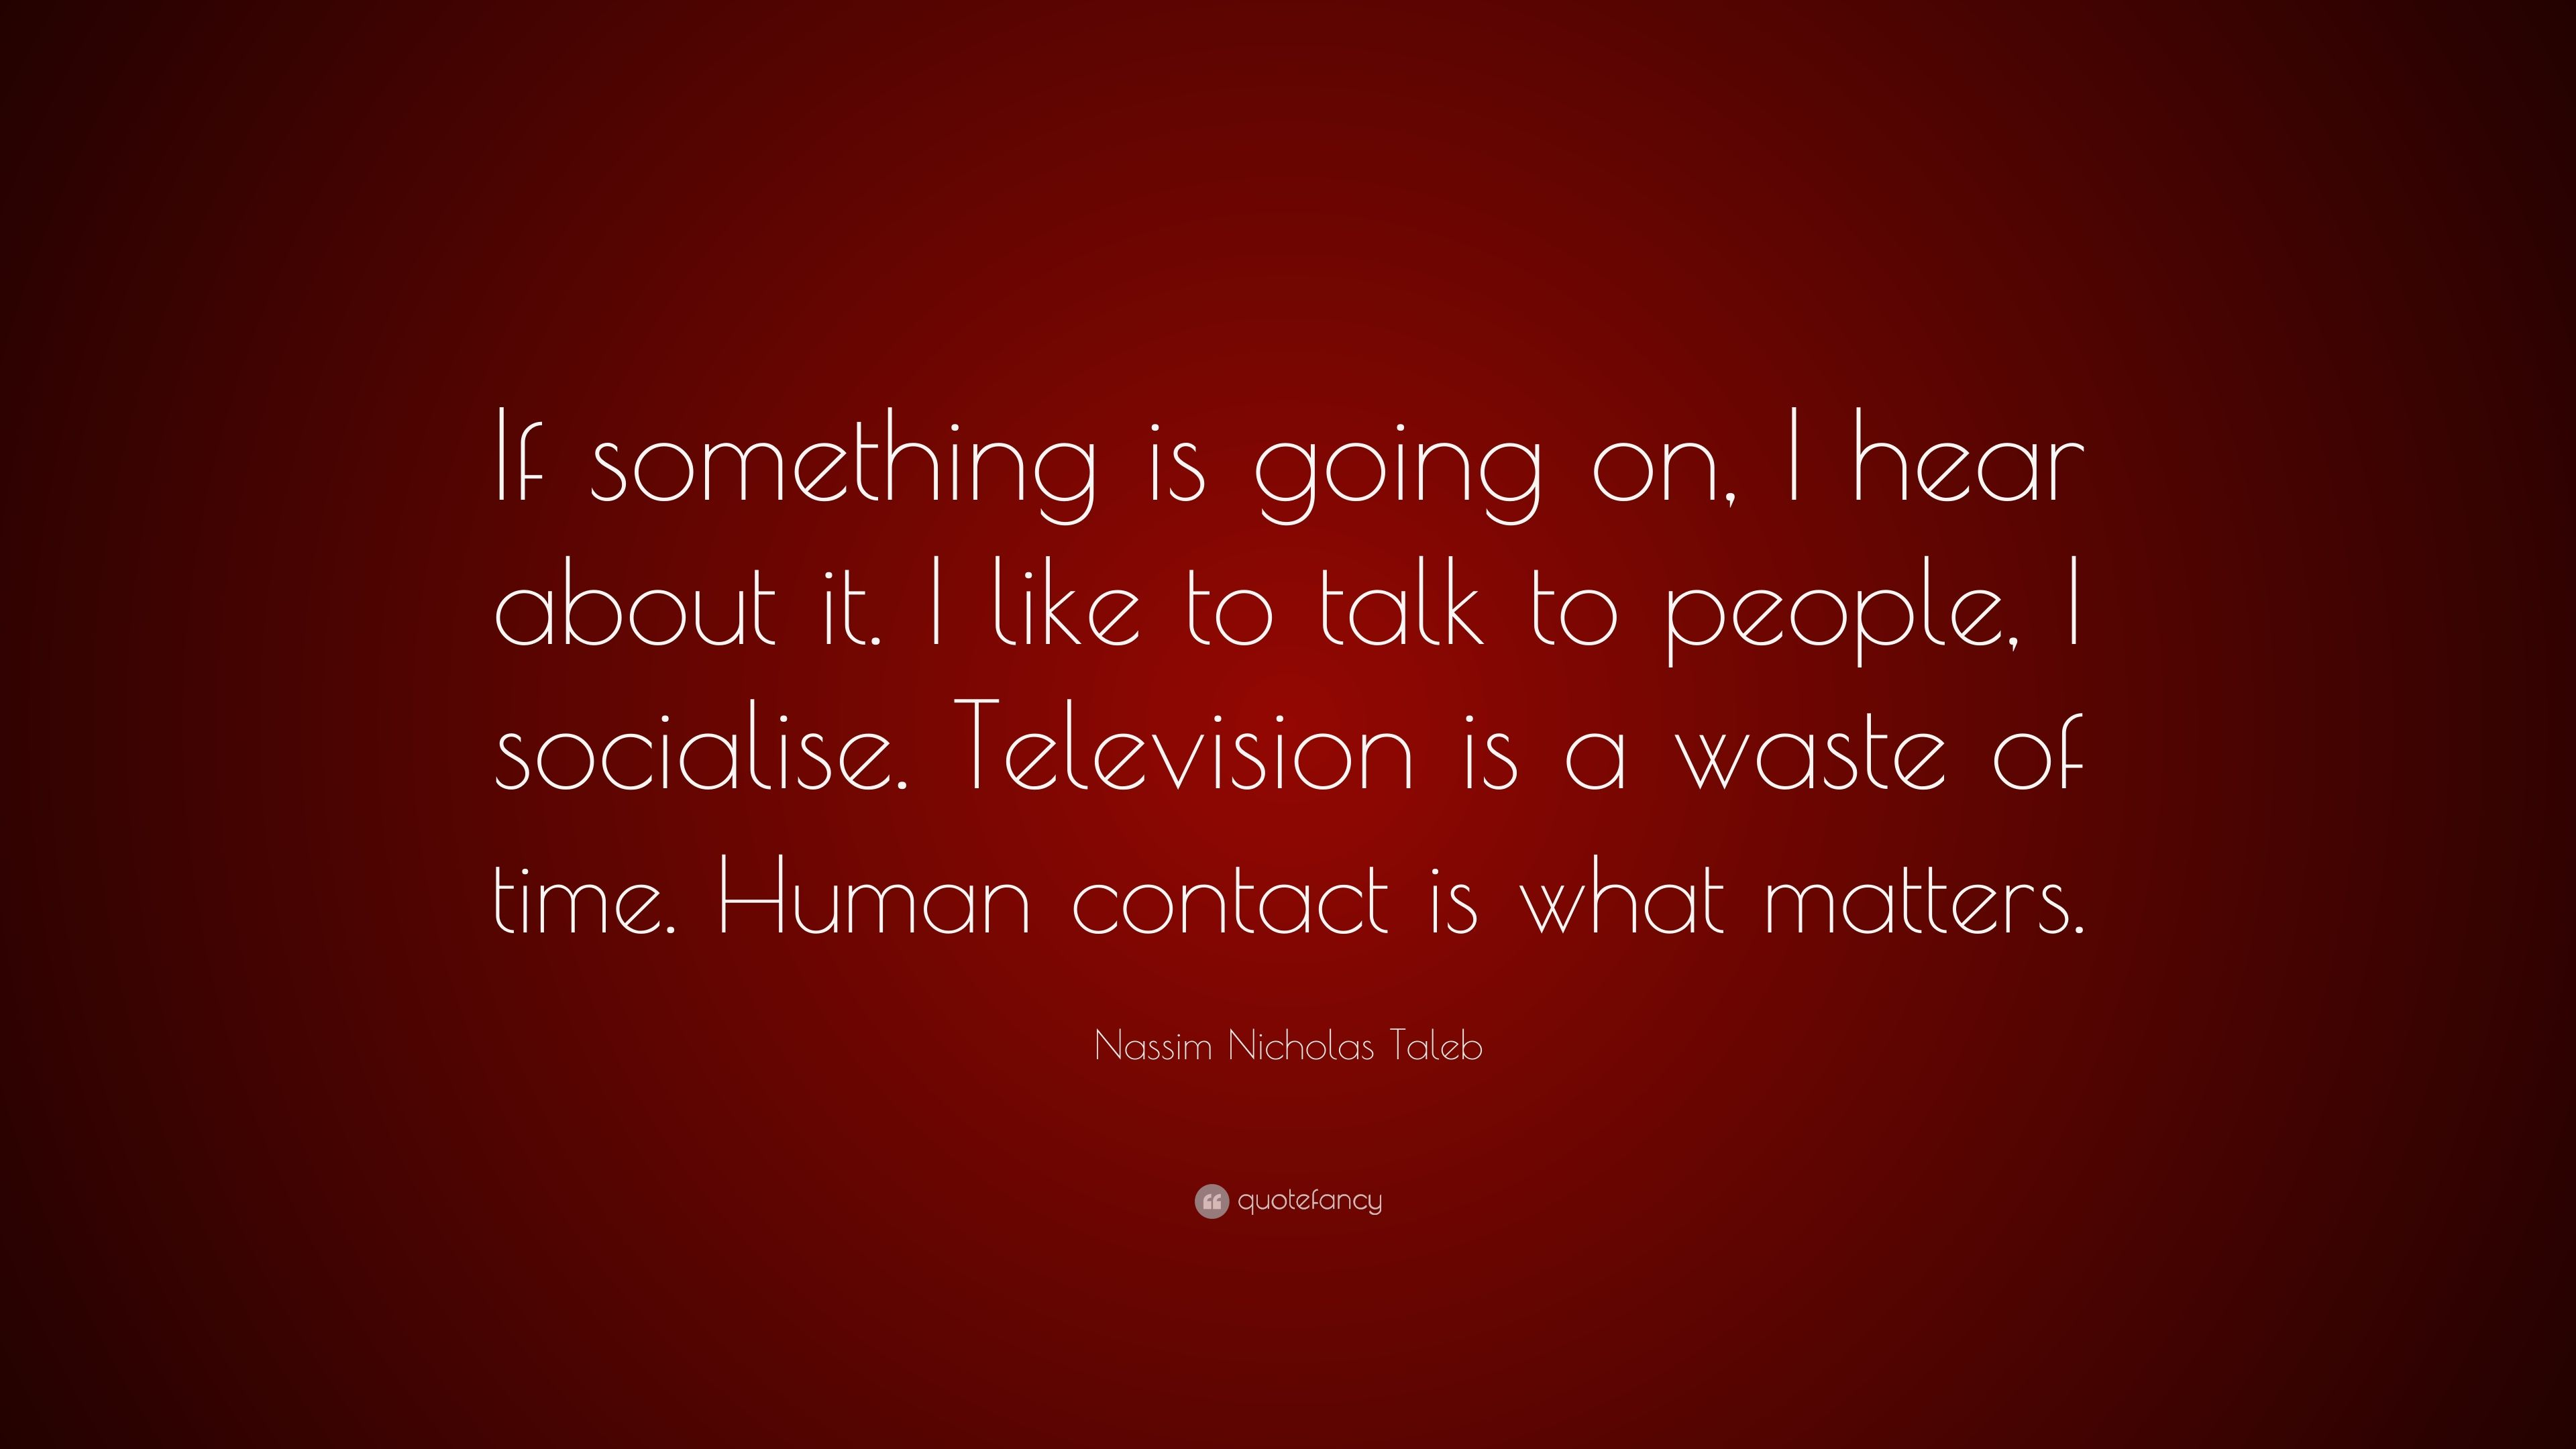 television is a waste of time